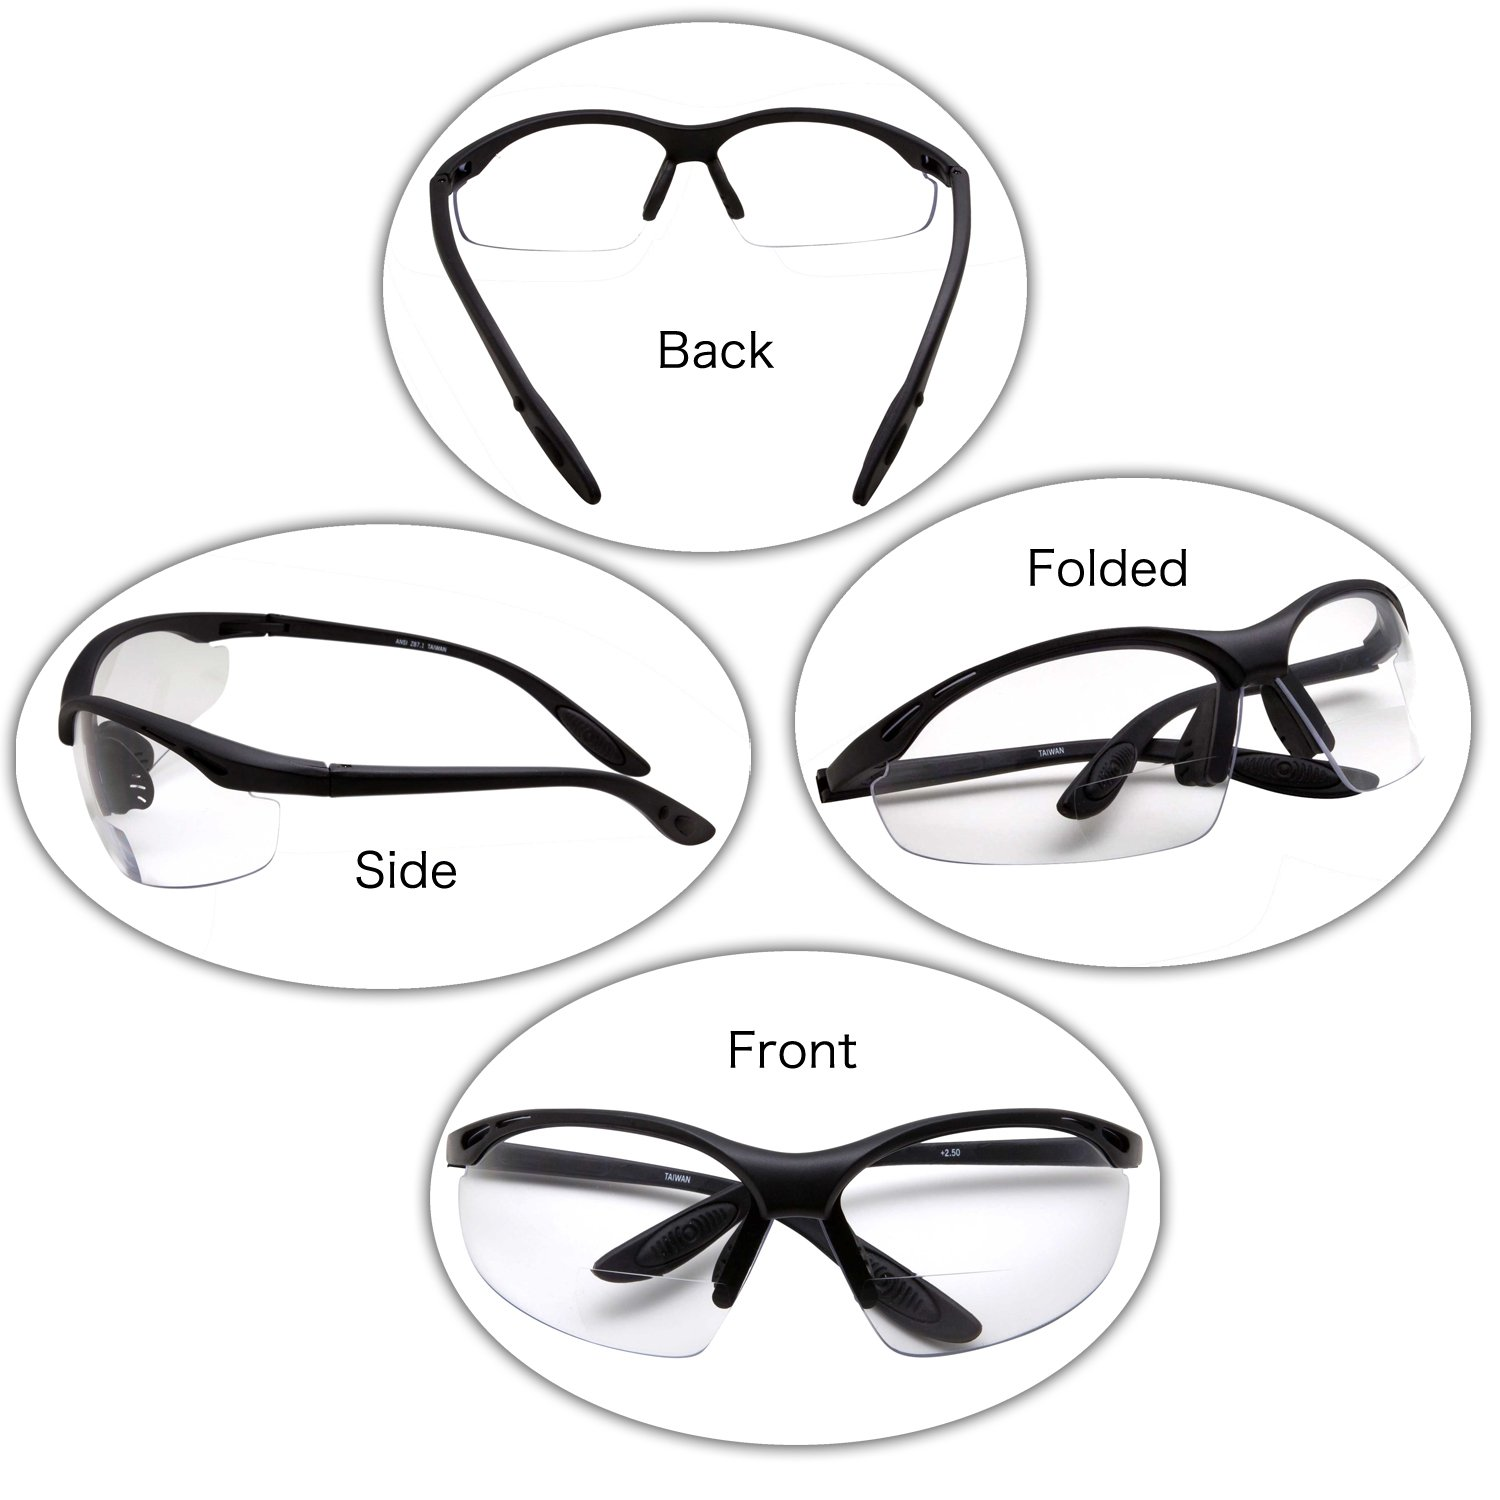 2 Pairs Bifocal Safety Glasses Clear Lens with Reading Corner - Non-Slip Rubber Grip Diopter/+2.00 by grinderPUNCH (Image #3)